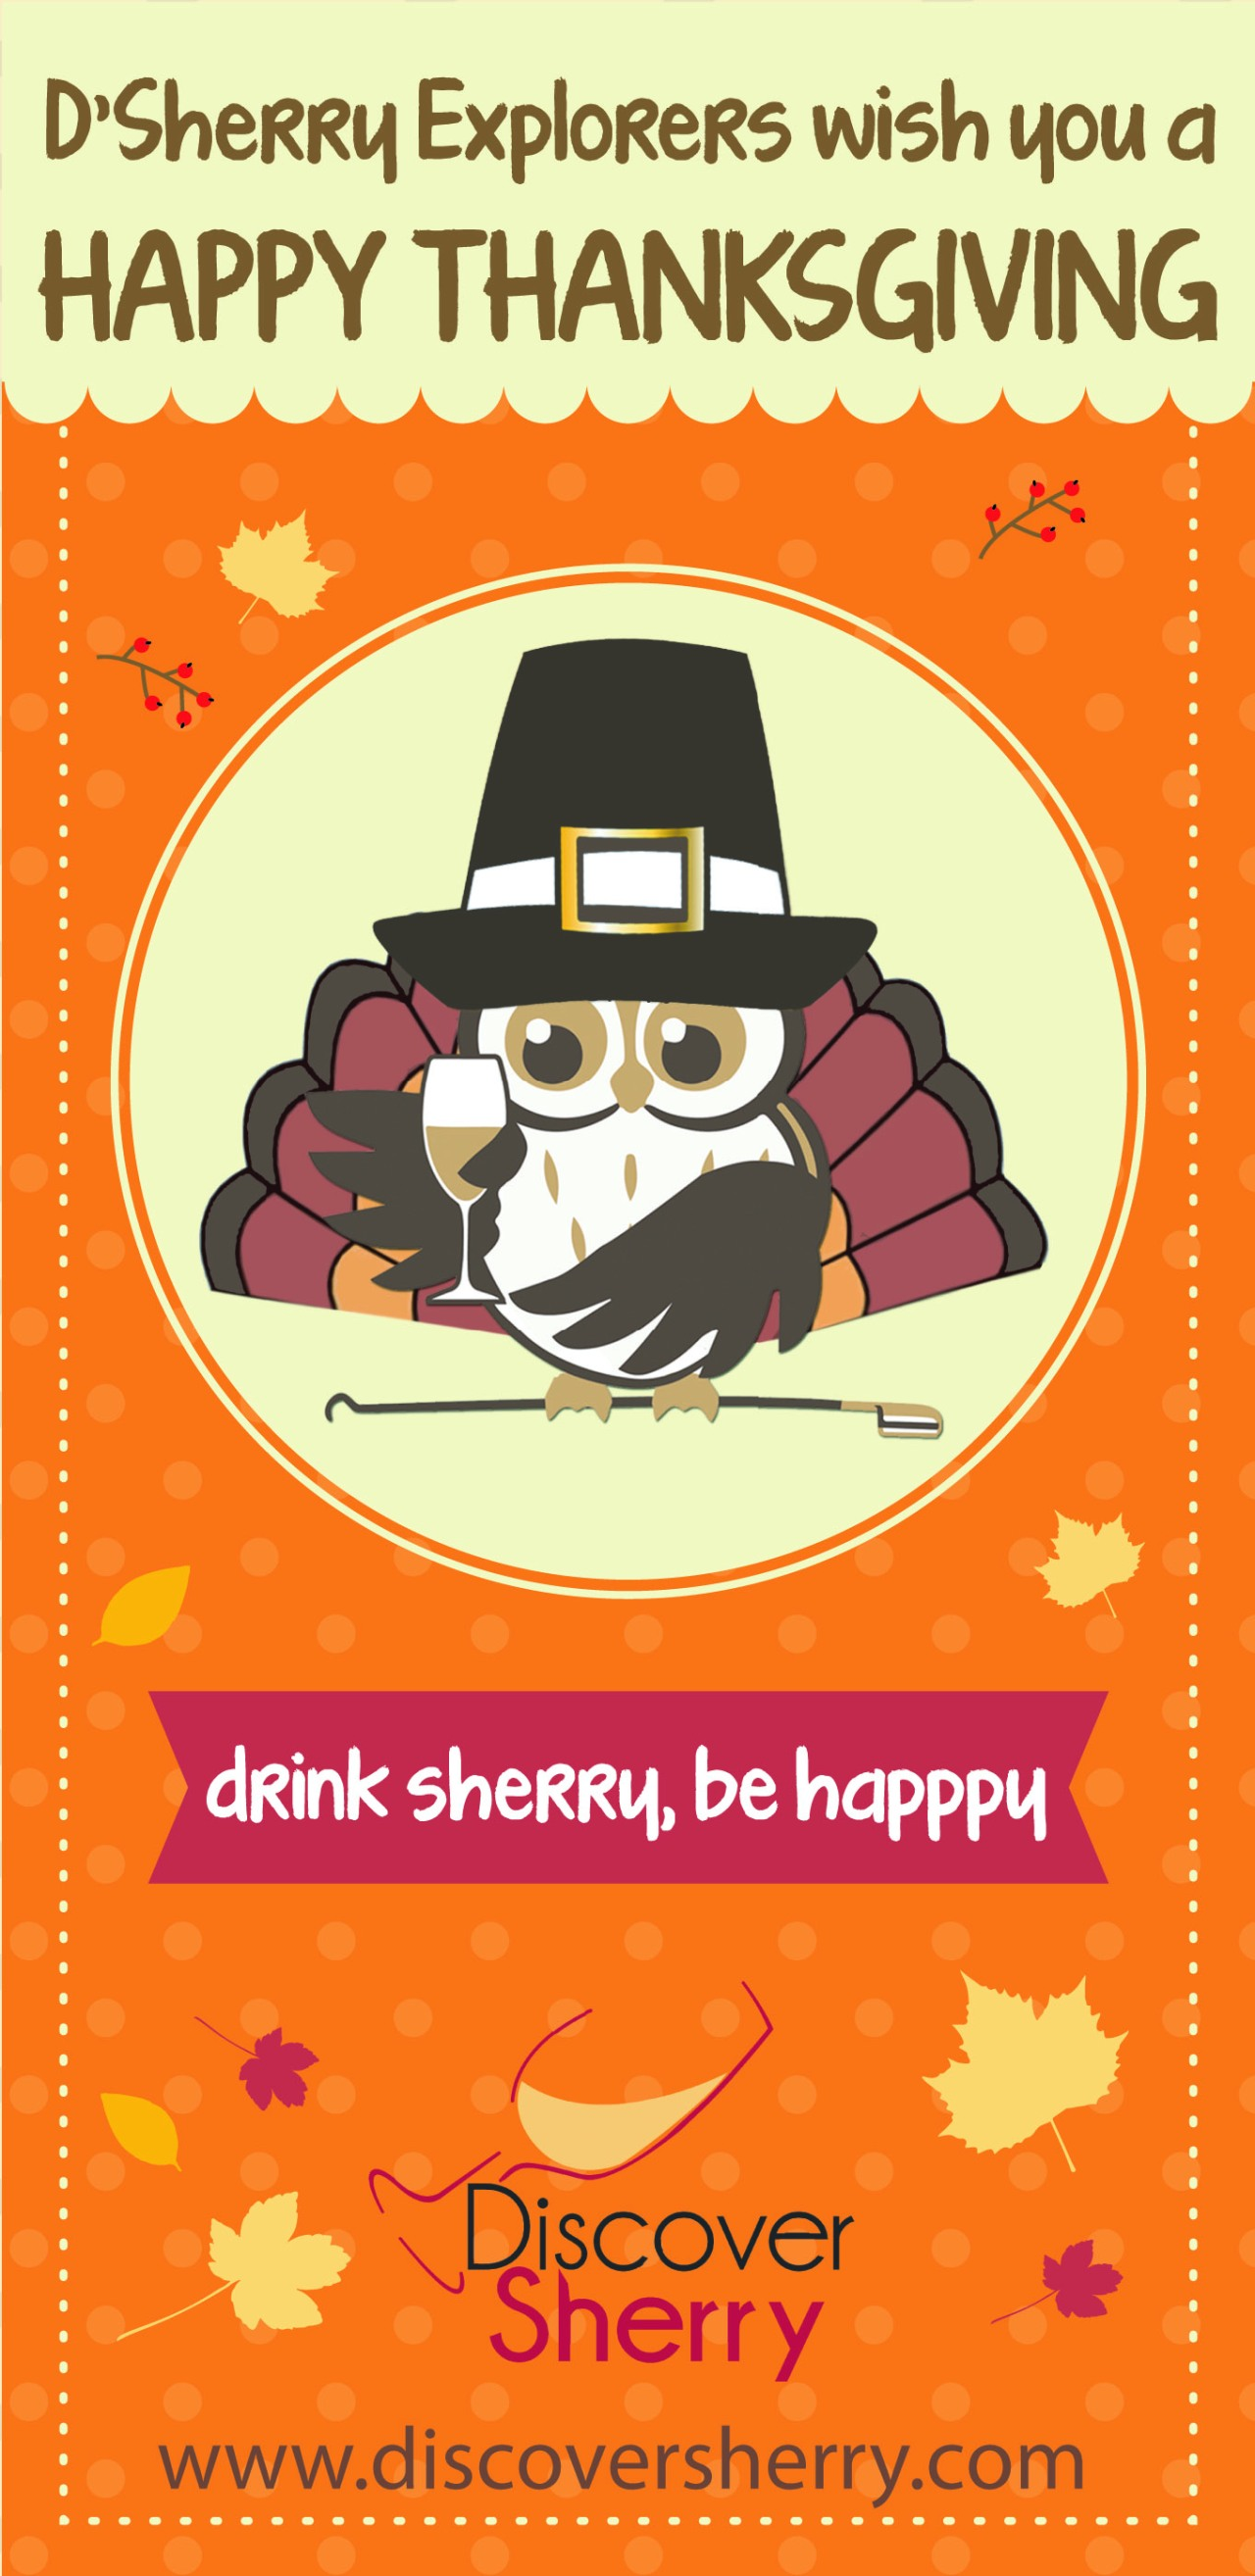 D´Sherry Explorers wish you a Happy Thanksgiving Day! ¡D´Sherry Explorers os desea Feliz Día de Acción de Gracias!